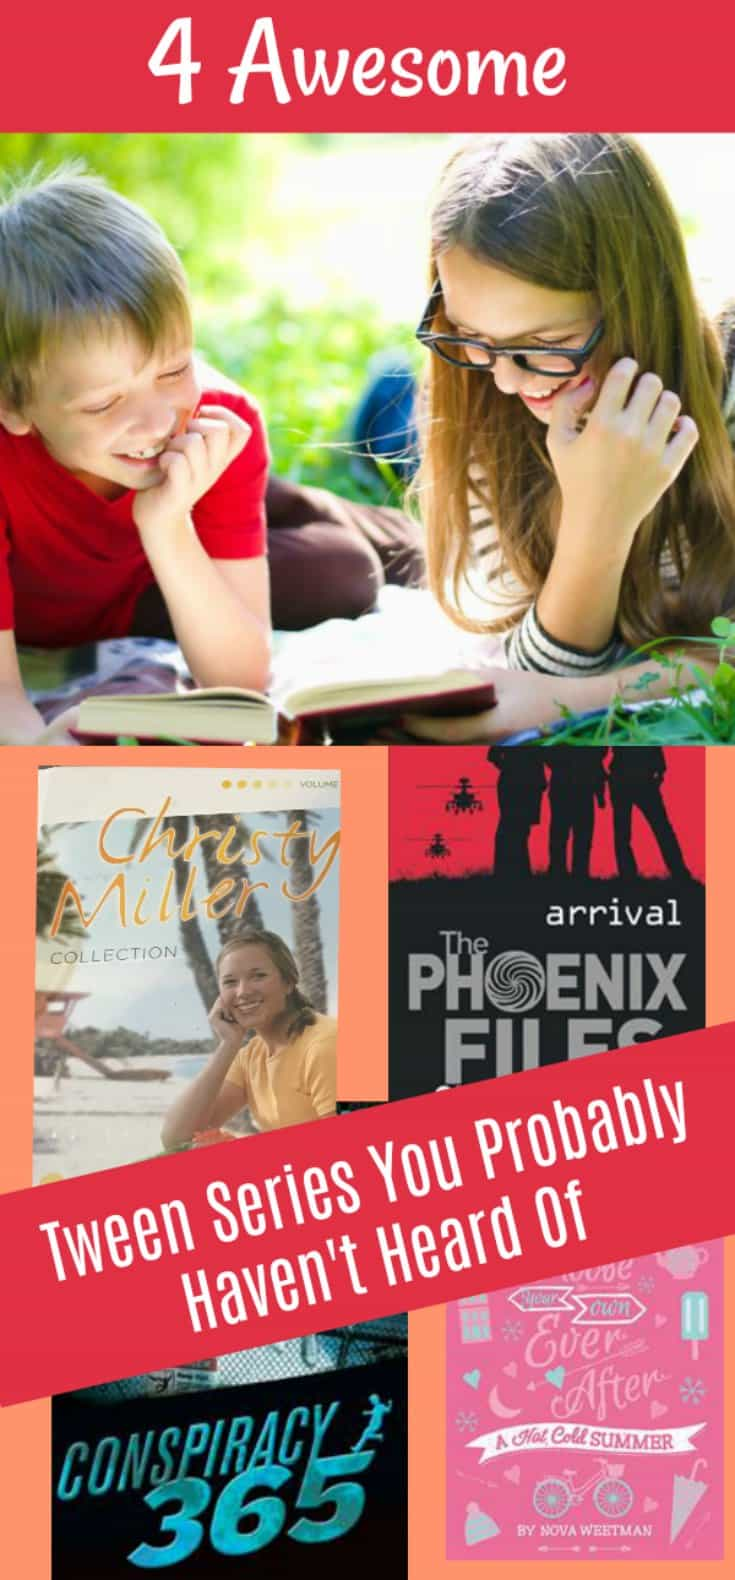 Here are 4 awesome book series that you have probably never heard of. I prefer series over regular books for my kids any day - it keeps them enthralled for much longer!